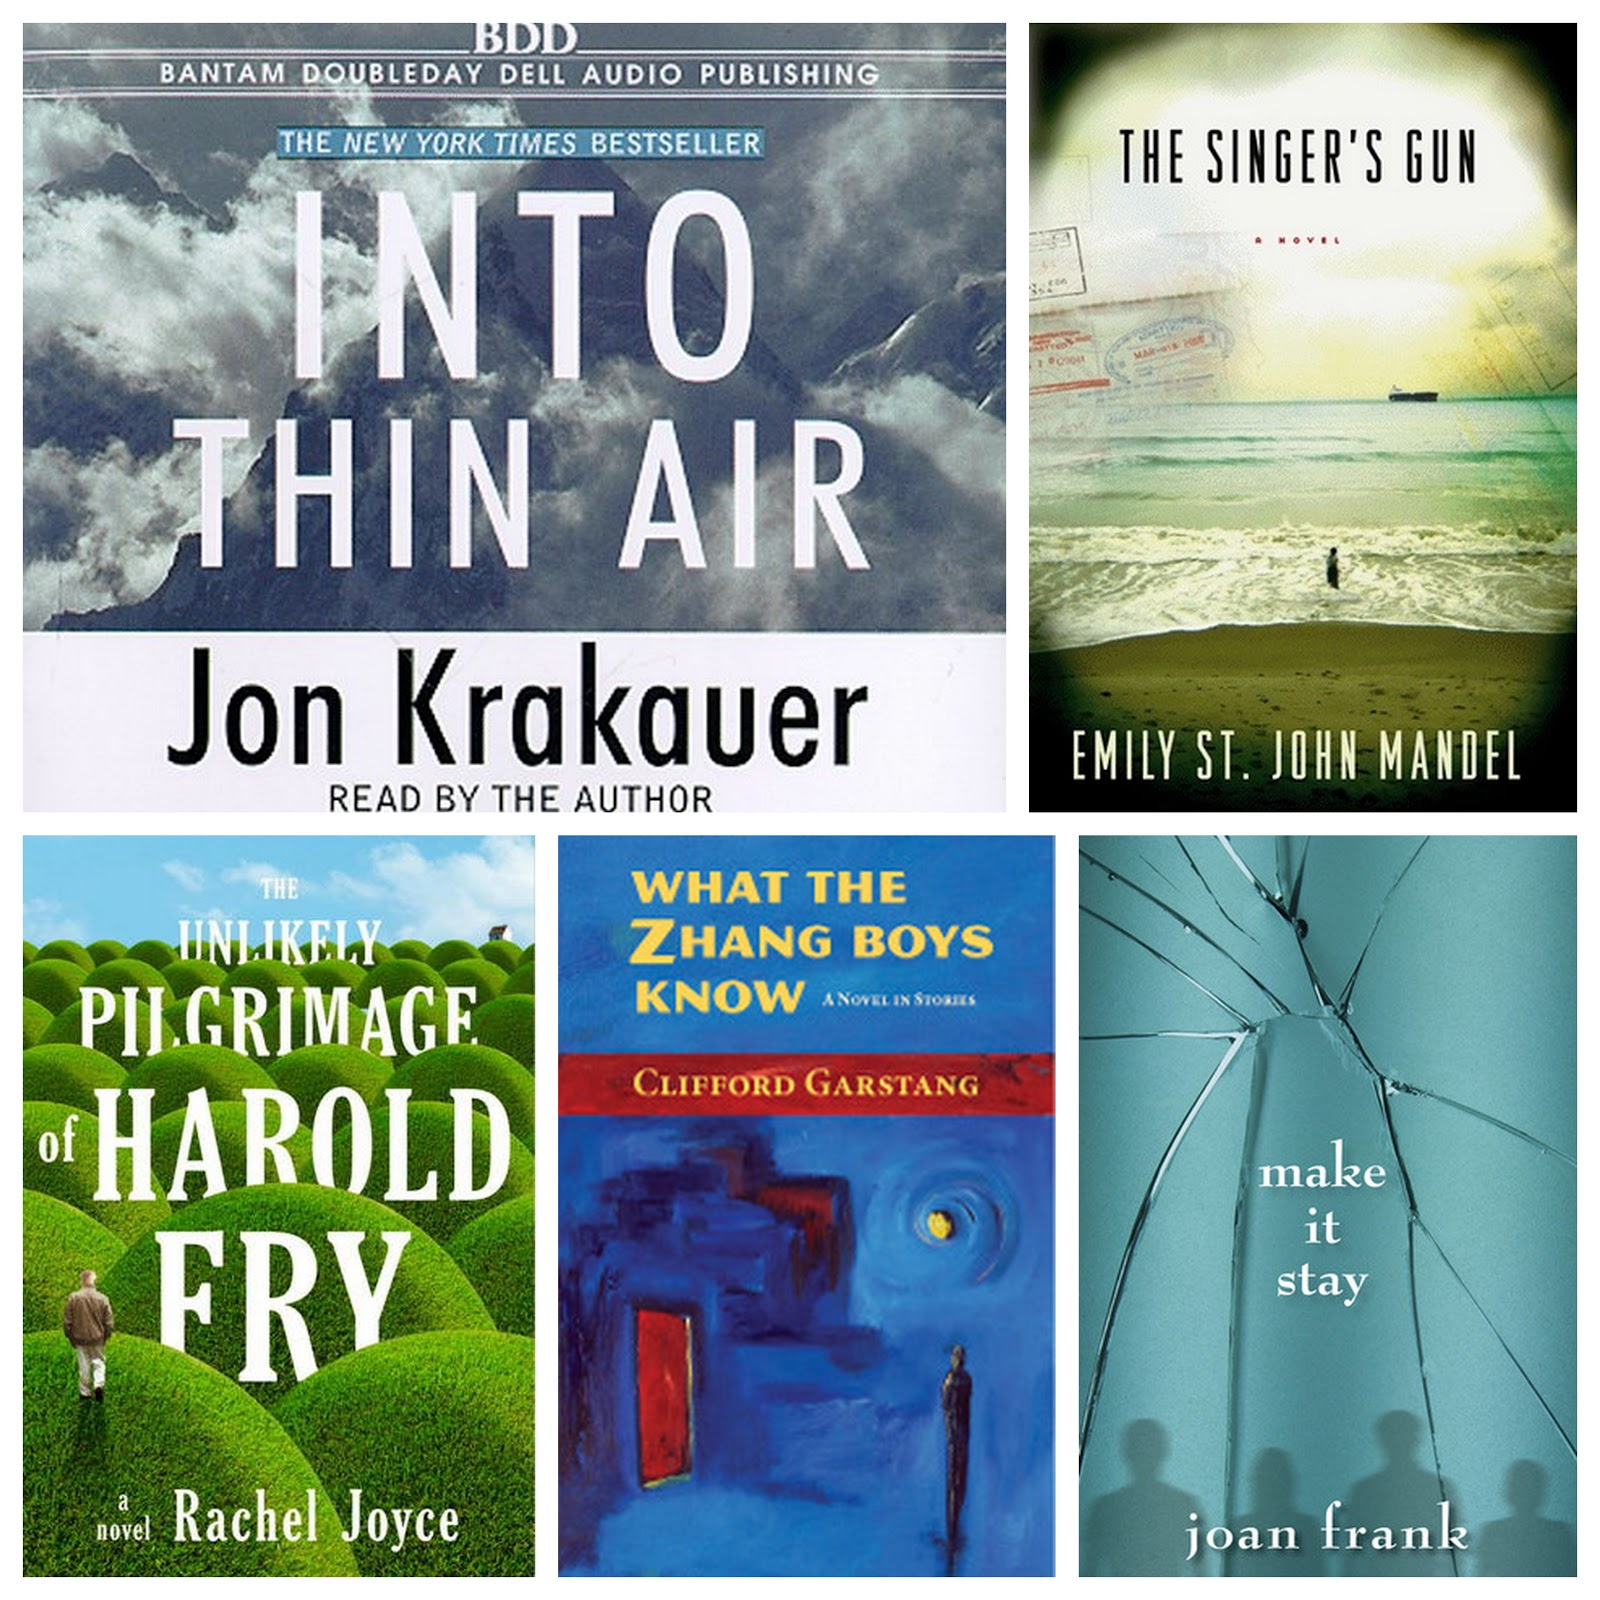 a summary of the plot of into thin air by jon kraukauer Into thin air study guide contains a biography of author jon krakauer, literature essays, quiz questions, major themes, characters, and a full summary and analysis.